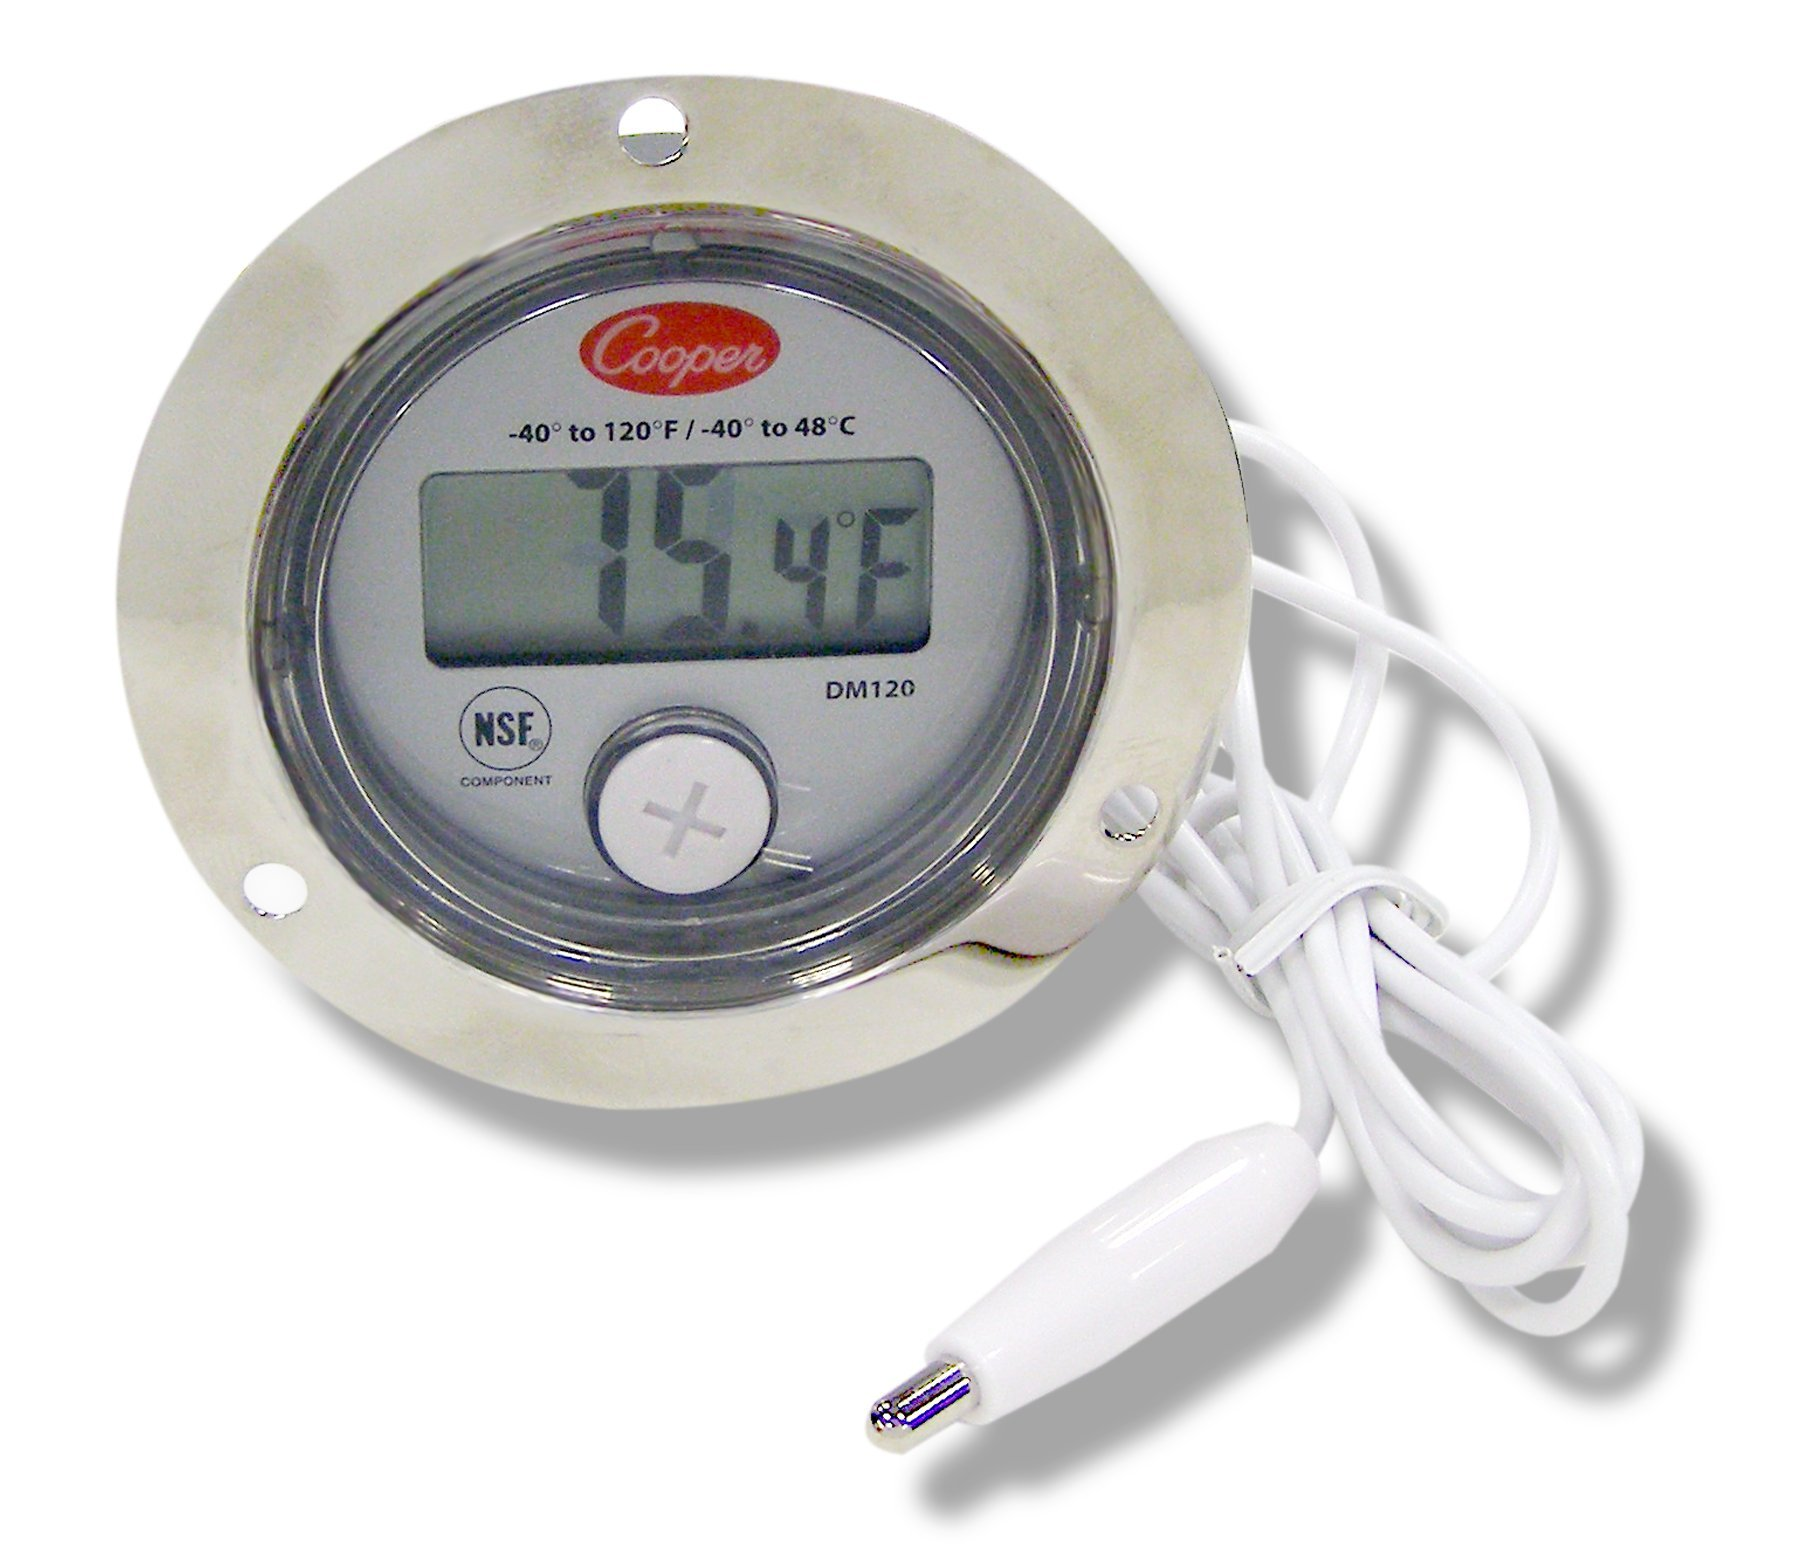 Cooper-Atkins DM120-0-3 Digital Panel Thermometer with 2'' Front Flange, -40/120° F Temperature Range